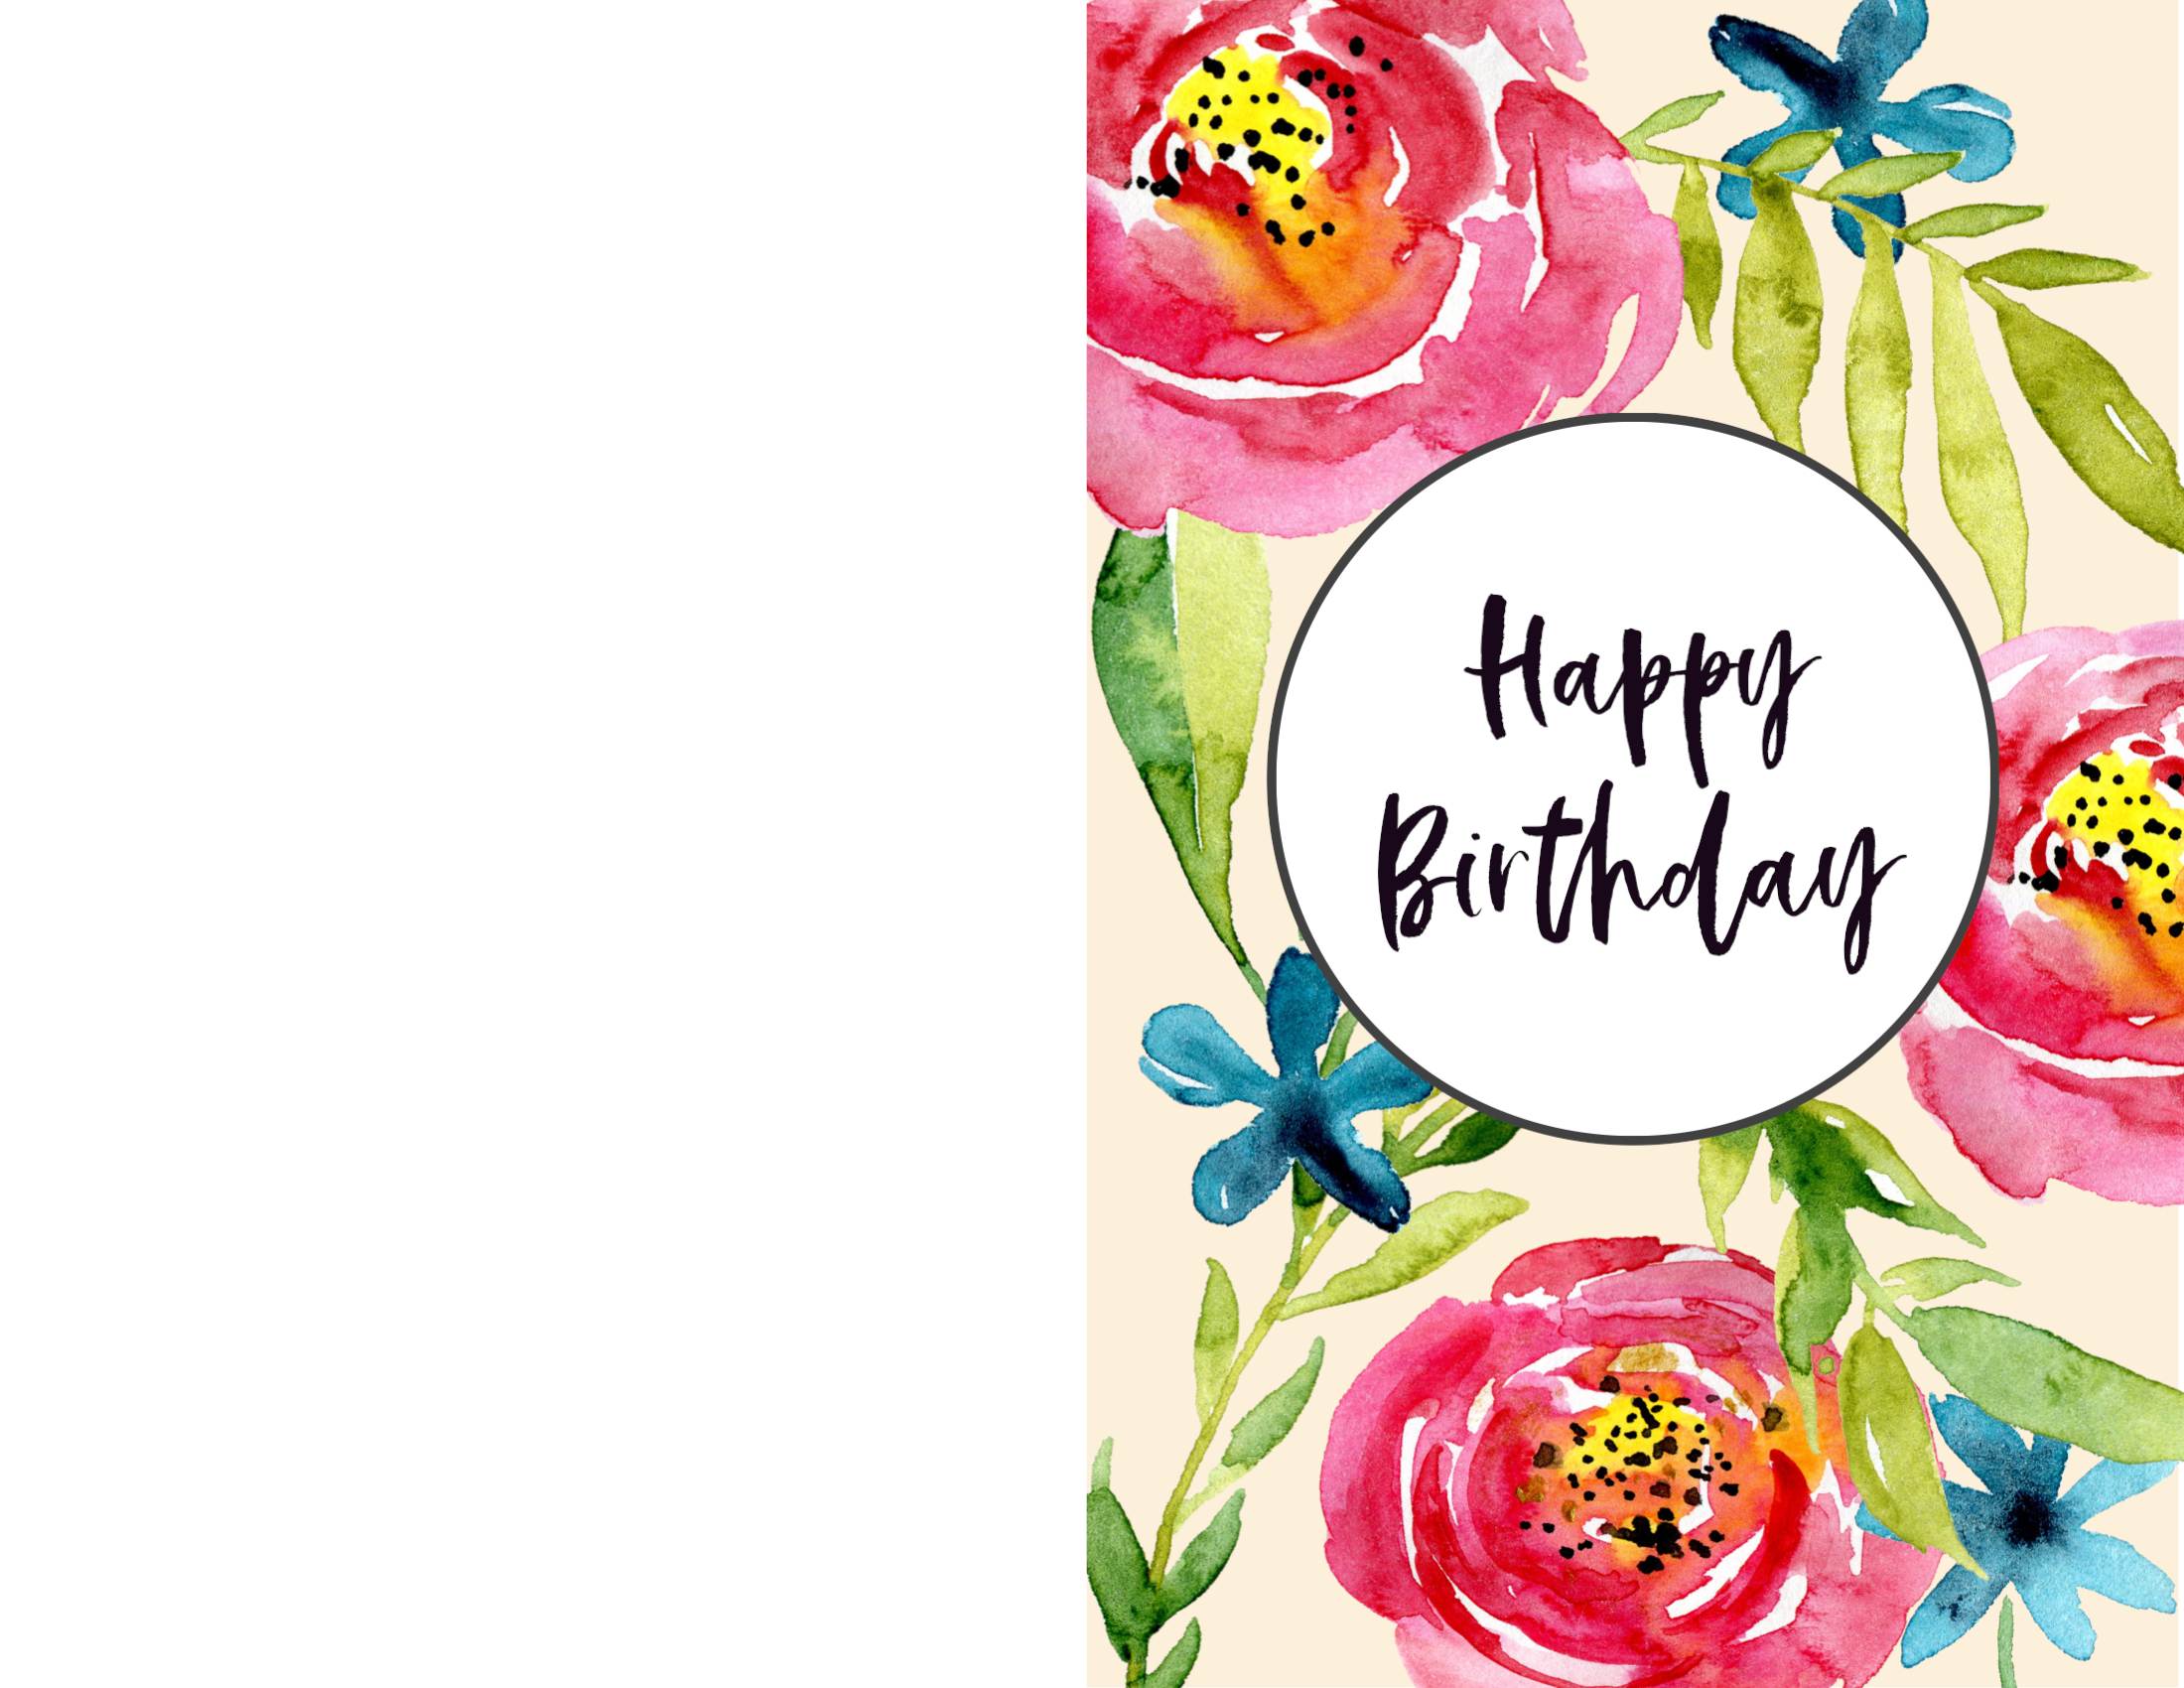 photograph relating to Printable Children's Birthday Cards known as Totally free Printable Birthday Playing cards - Paper Path Structure